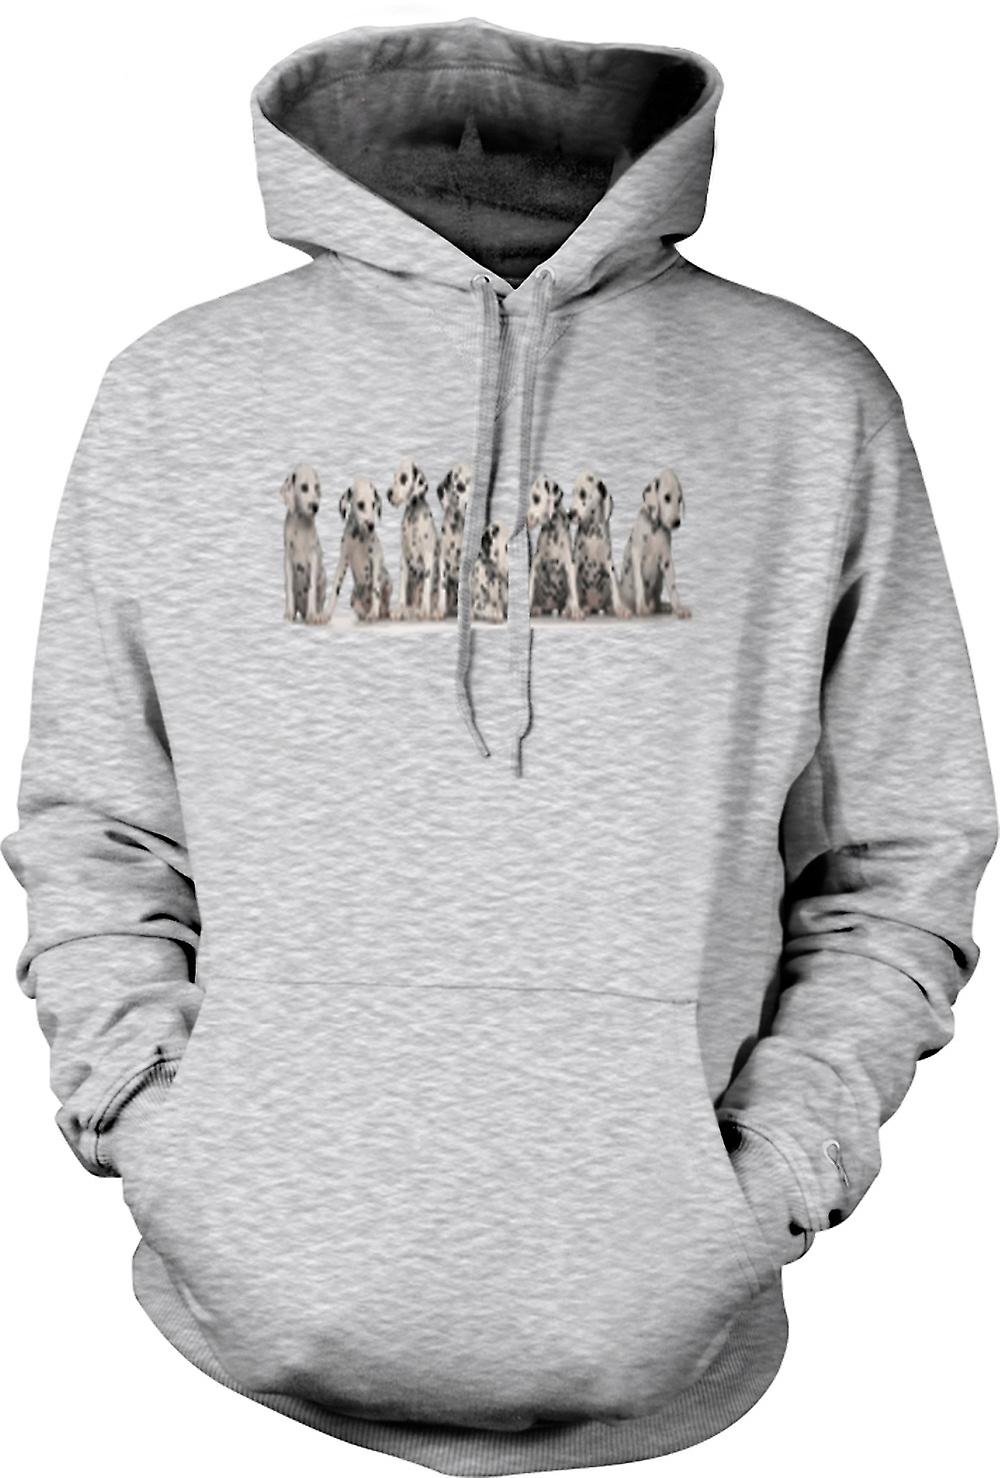 Mens Hoodie - Cute Dalmation Puppies